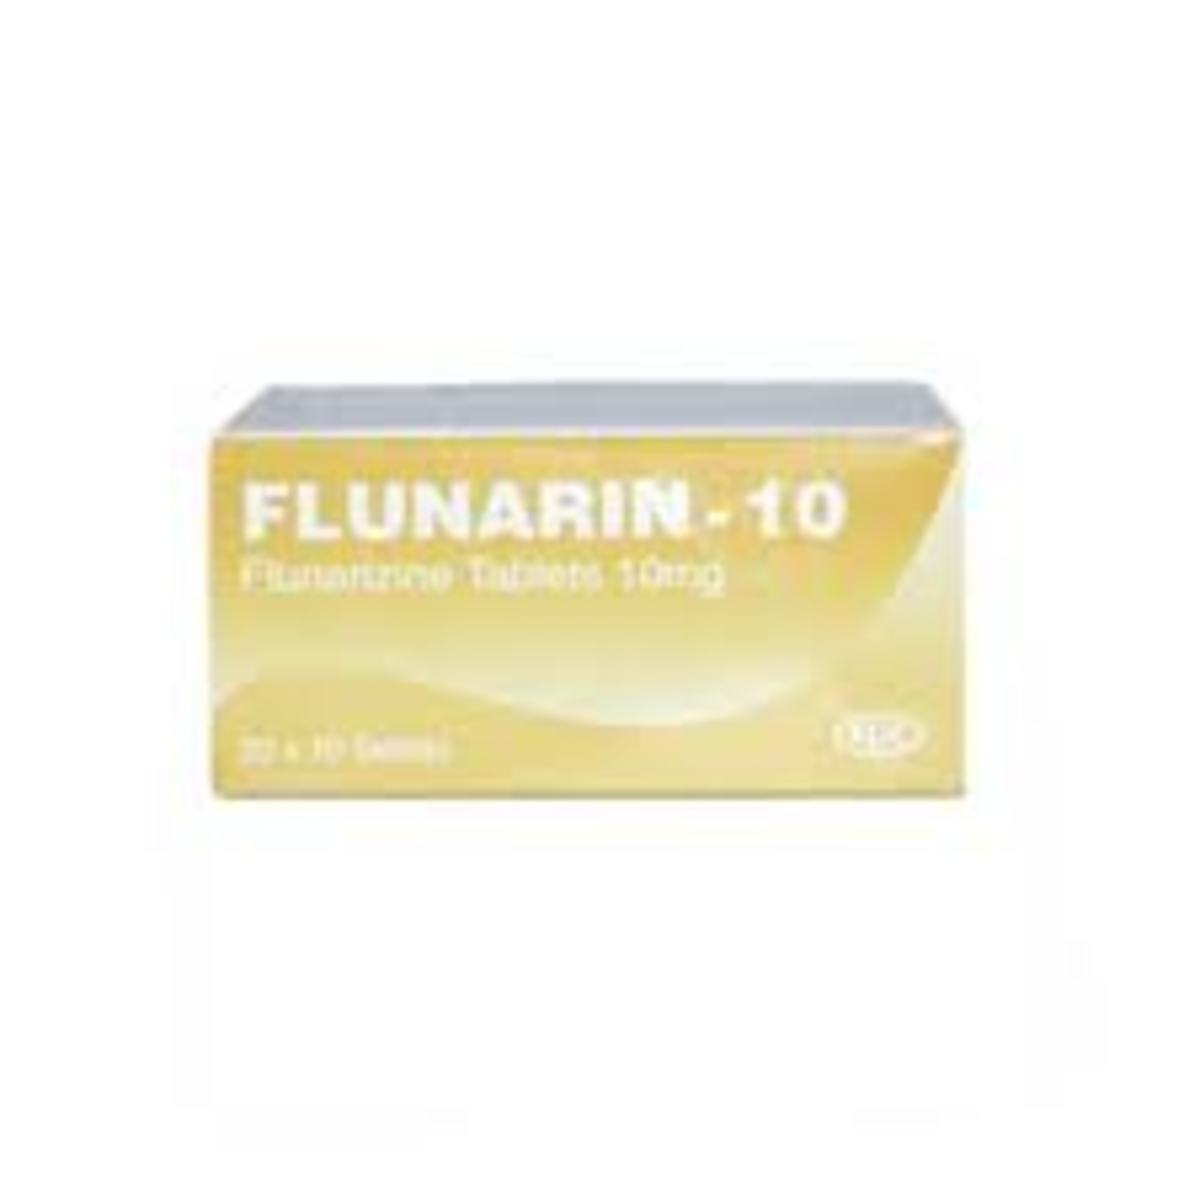 Flunarin uses and side effects